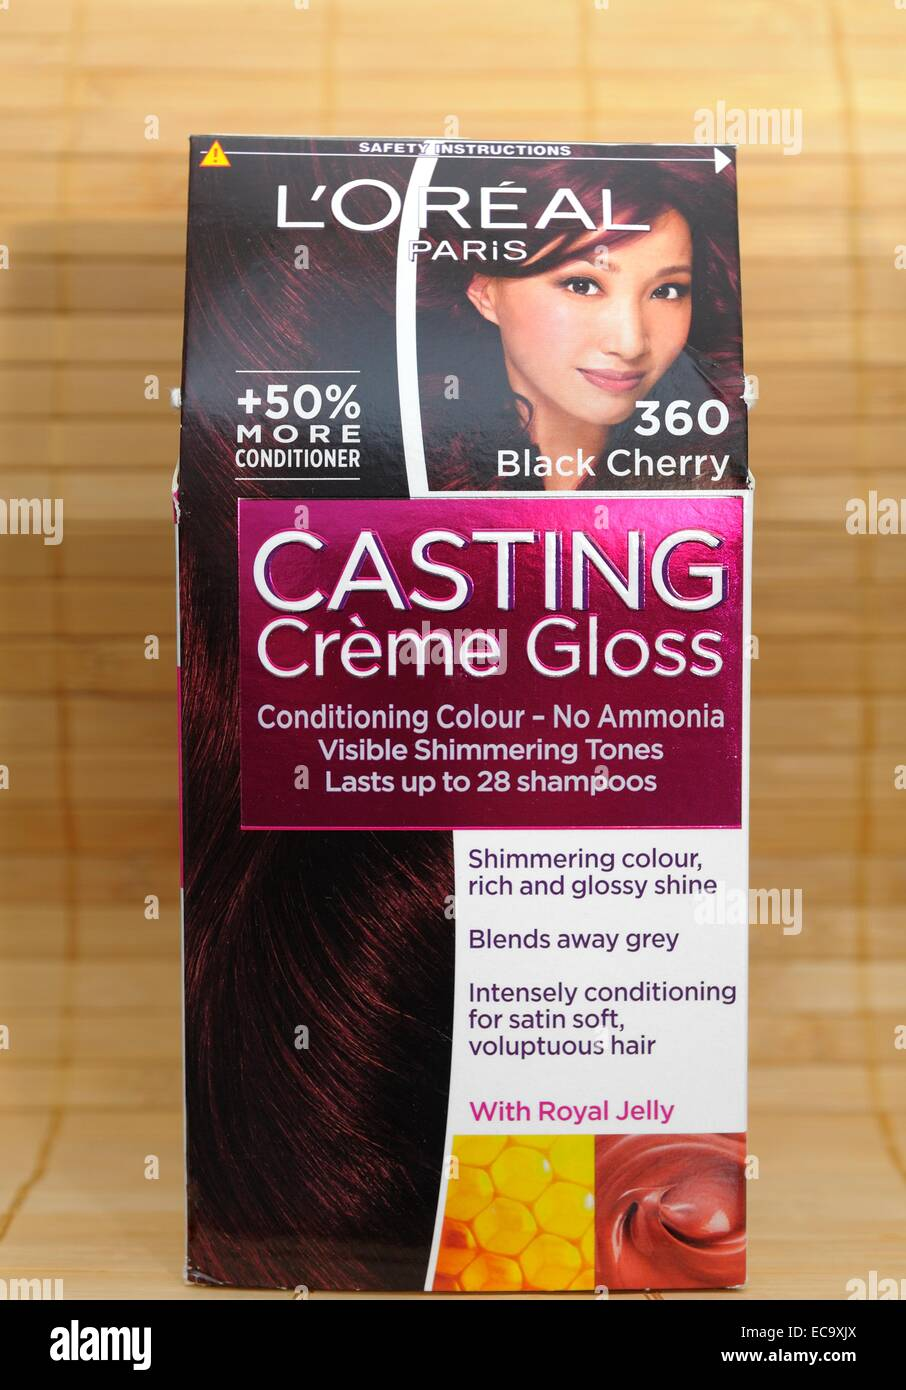 loreal black cherry casting creme gloss hair dye - Hair Color Black Cherry